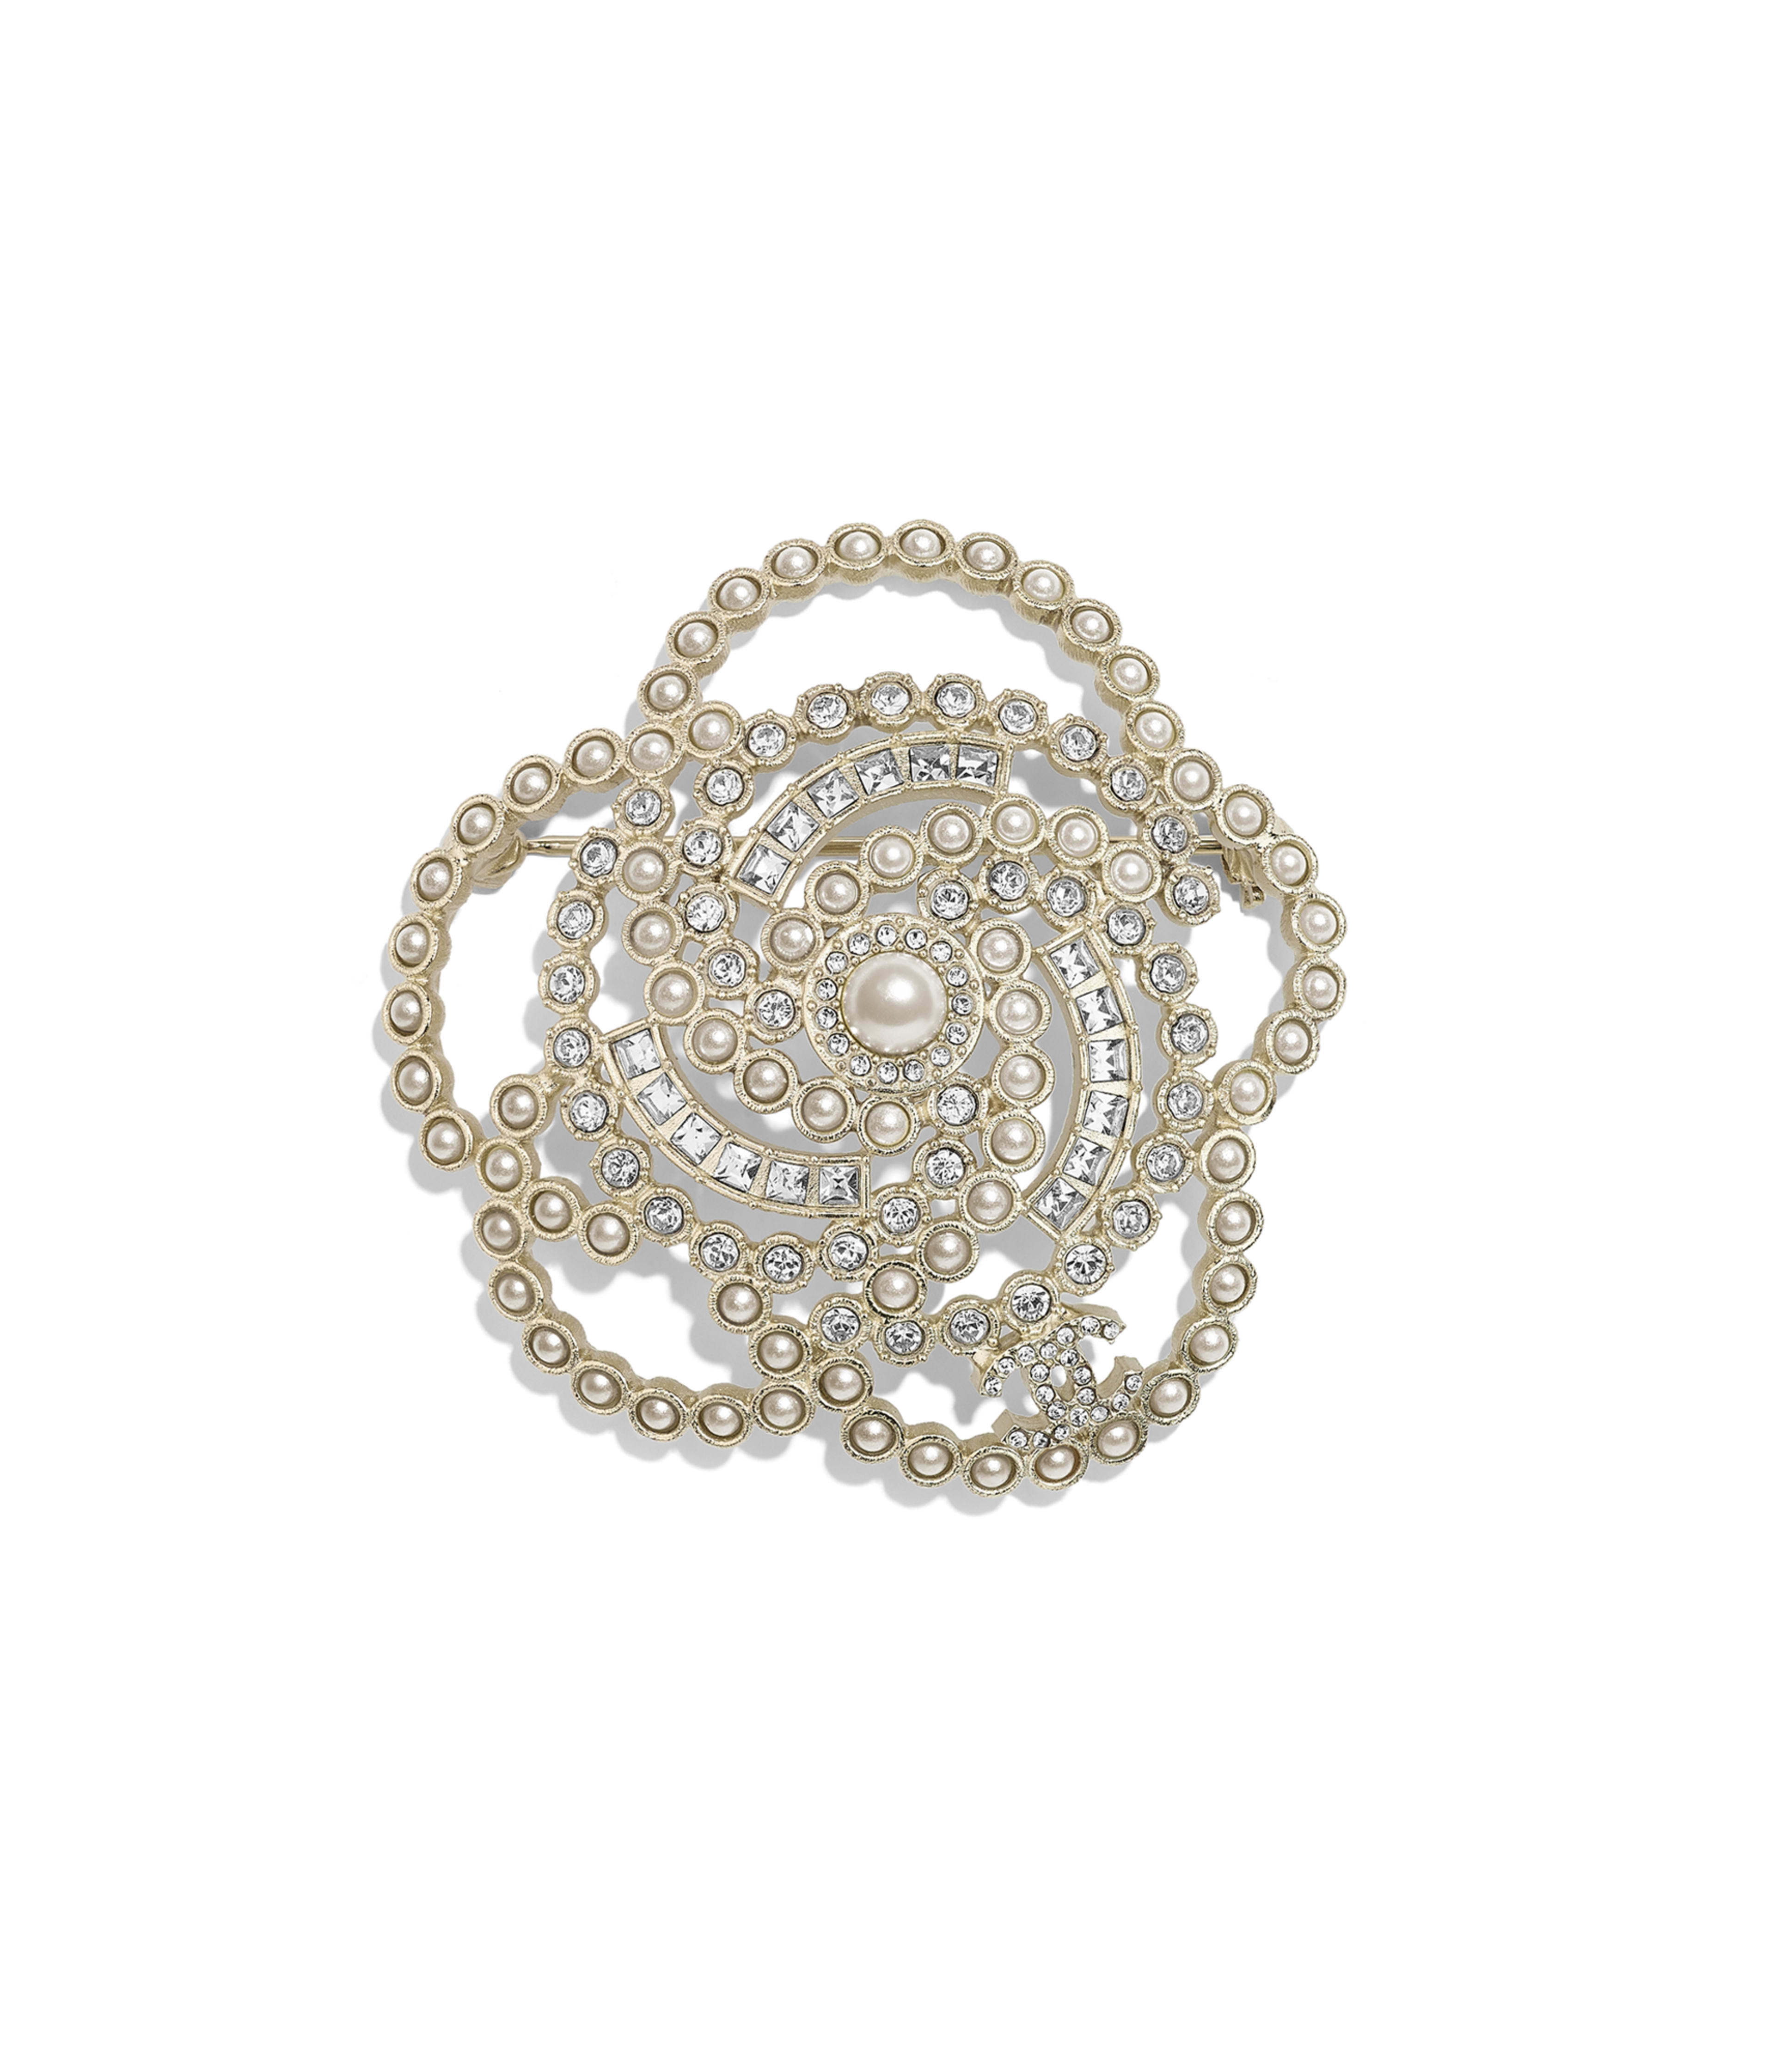 7a9a4147c66 Brooch Metal, Glass Pearls & Strass, Gold, Pearly White & Crystal Ref.  AB2310Y47806Z2953